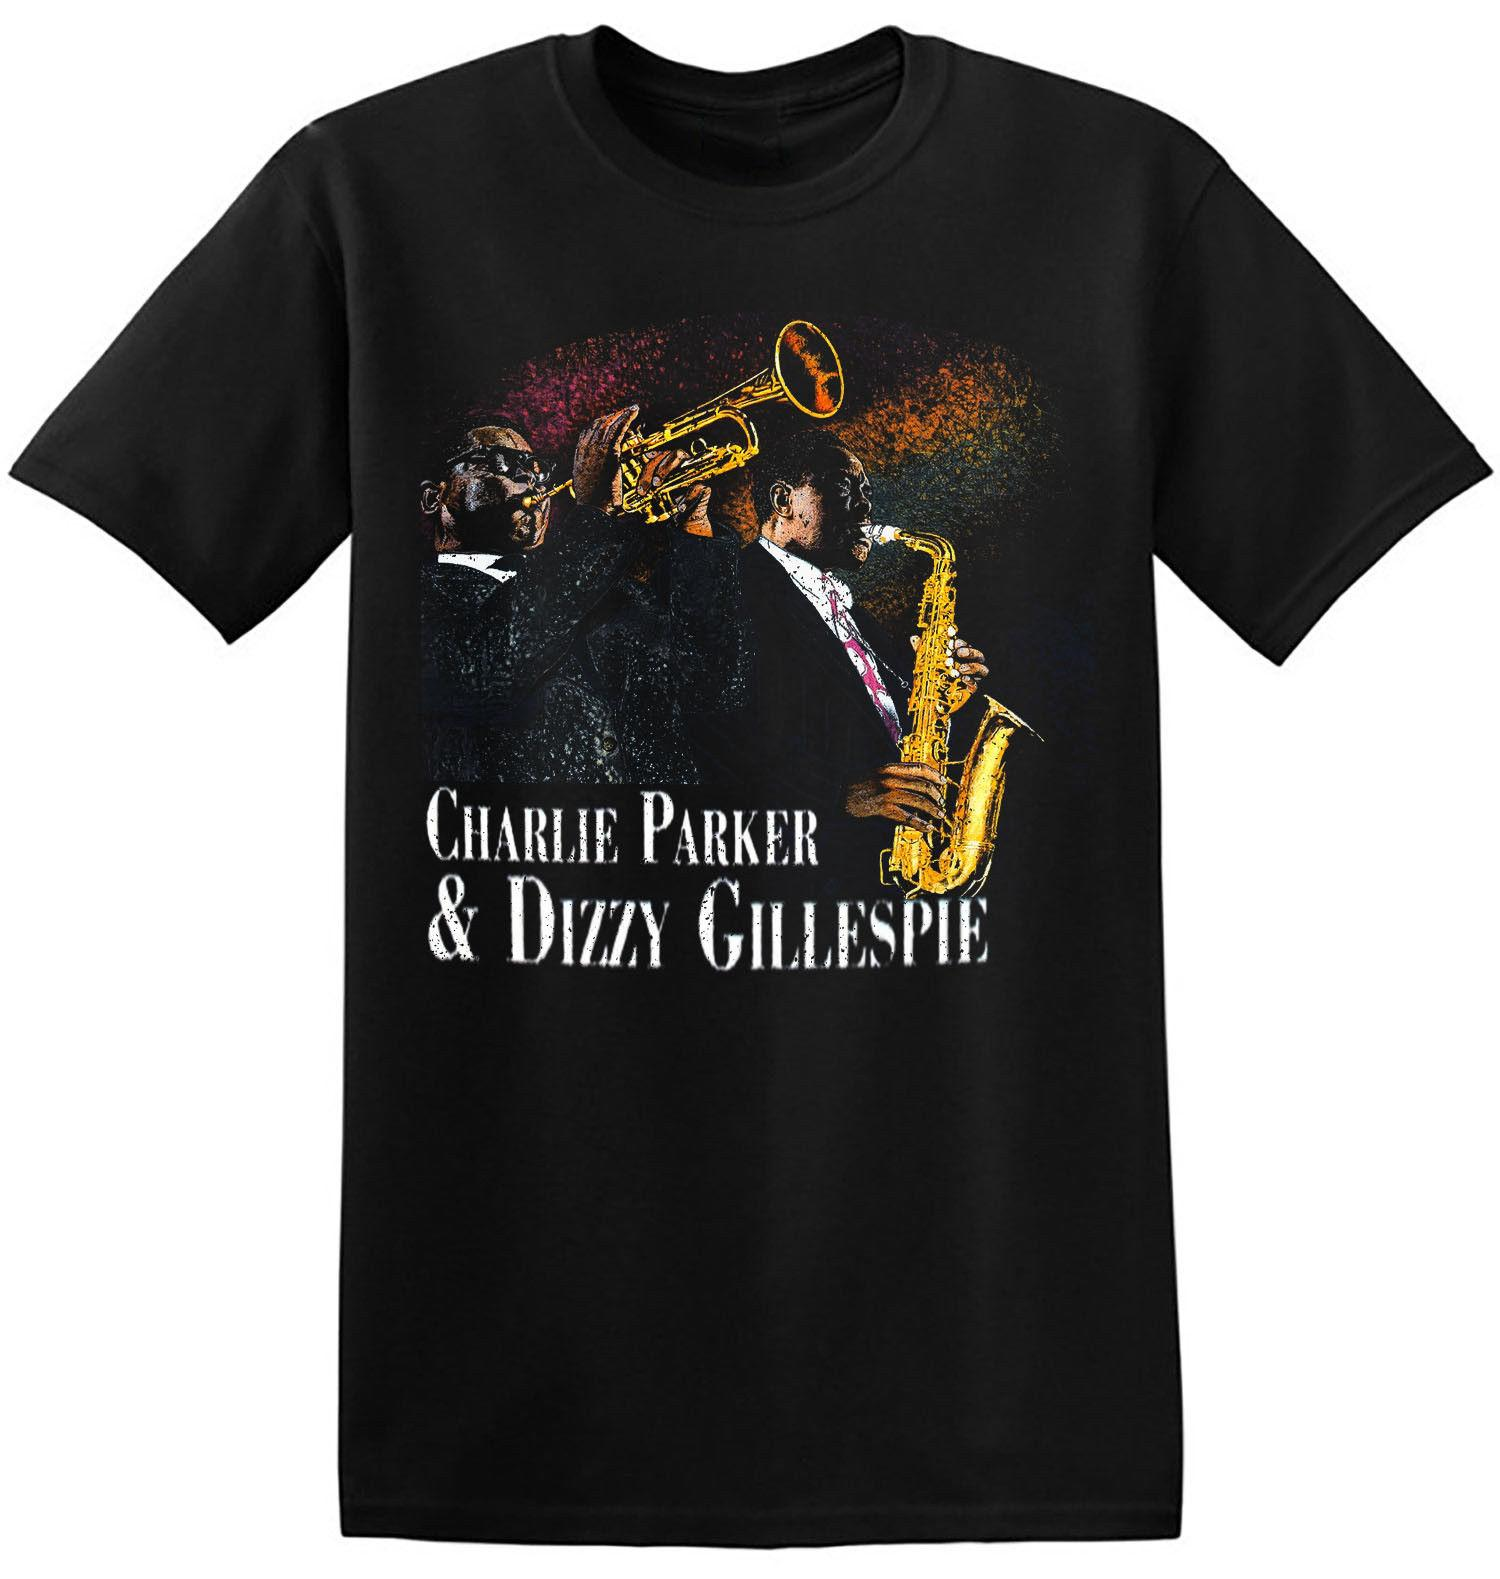 Charlie Parker T Shirt Cool Graphic New Black Retro Jazz Music Band Tee  4-A-003 Short Sleeve Mens Formal Shirts